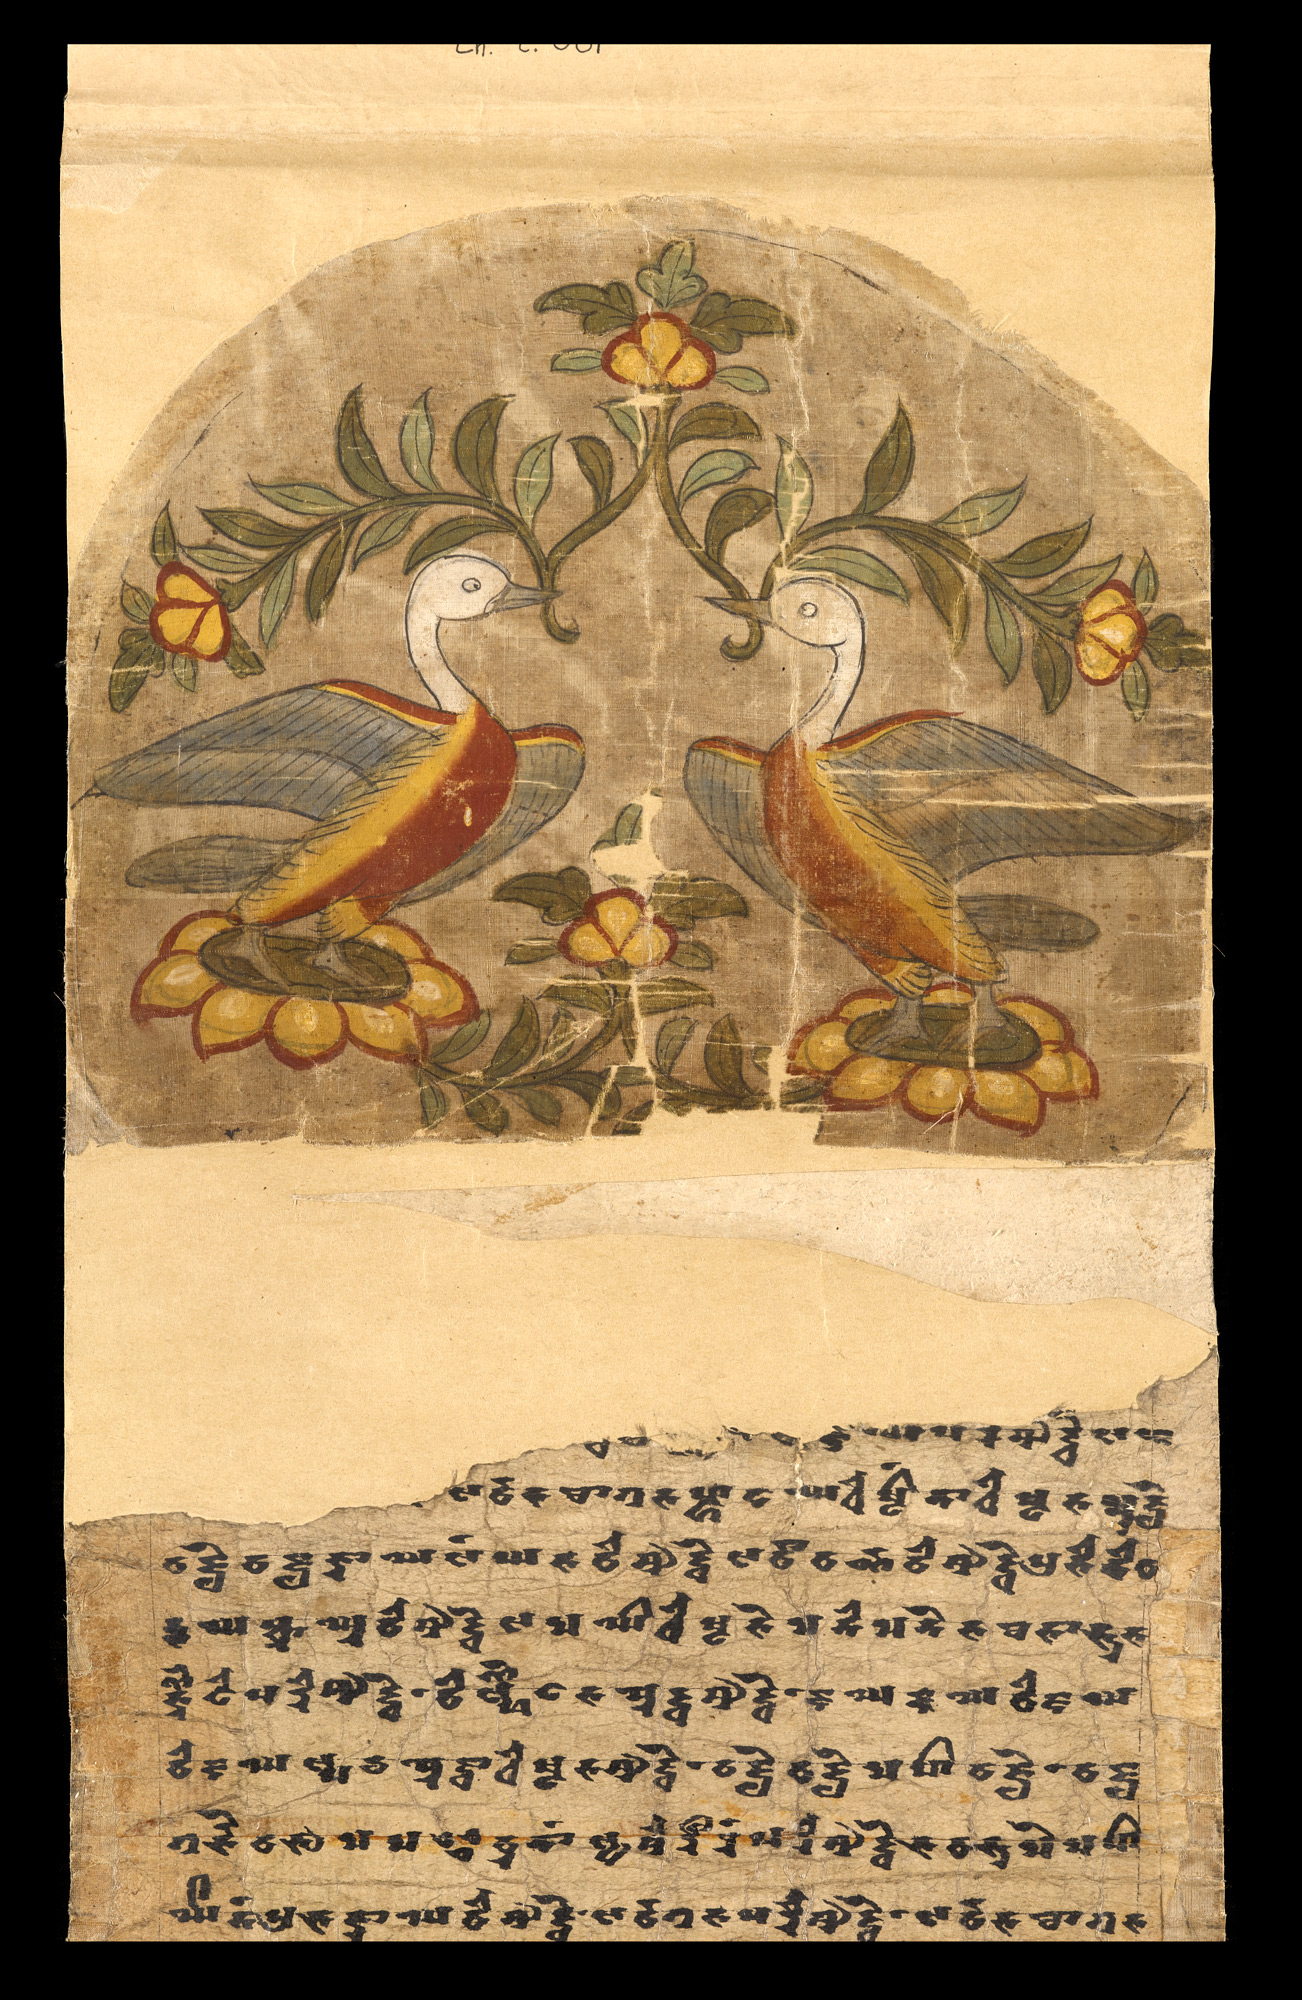 painted silk. The image represents two confronted geese standing on lotus flowers.